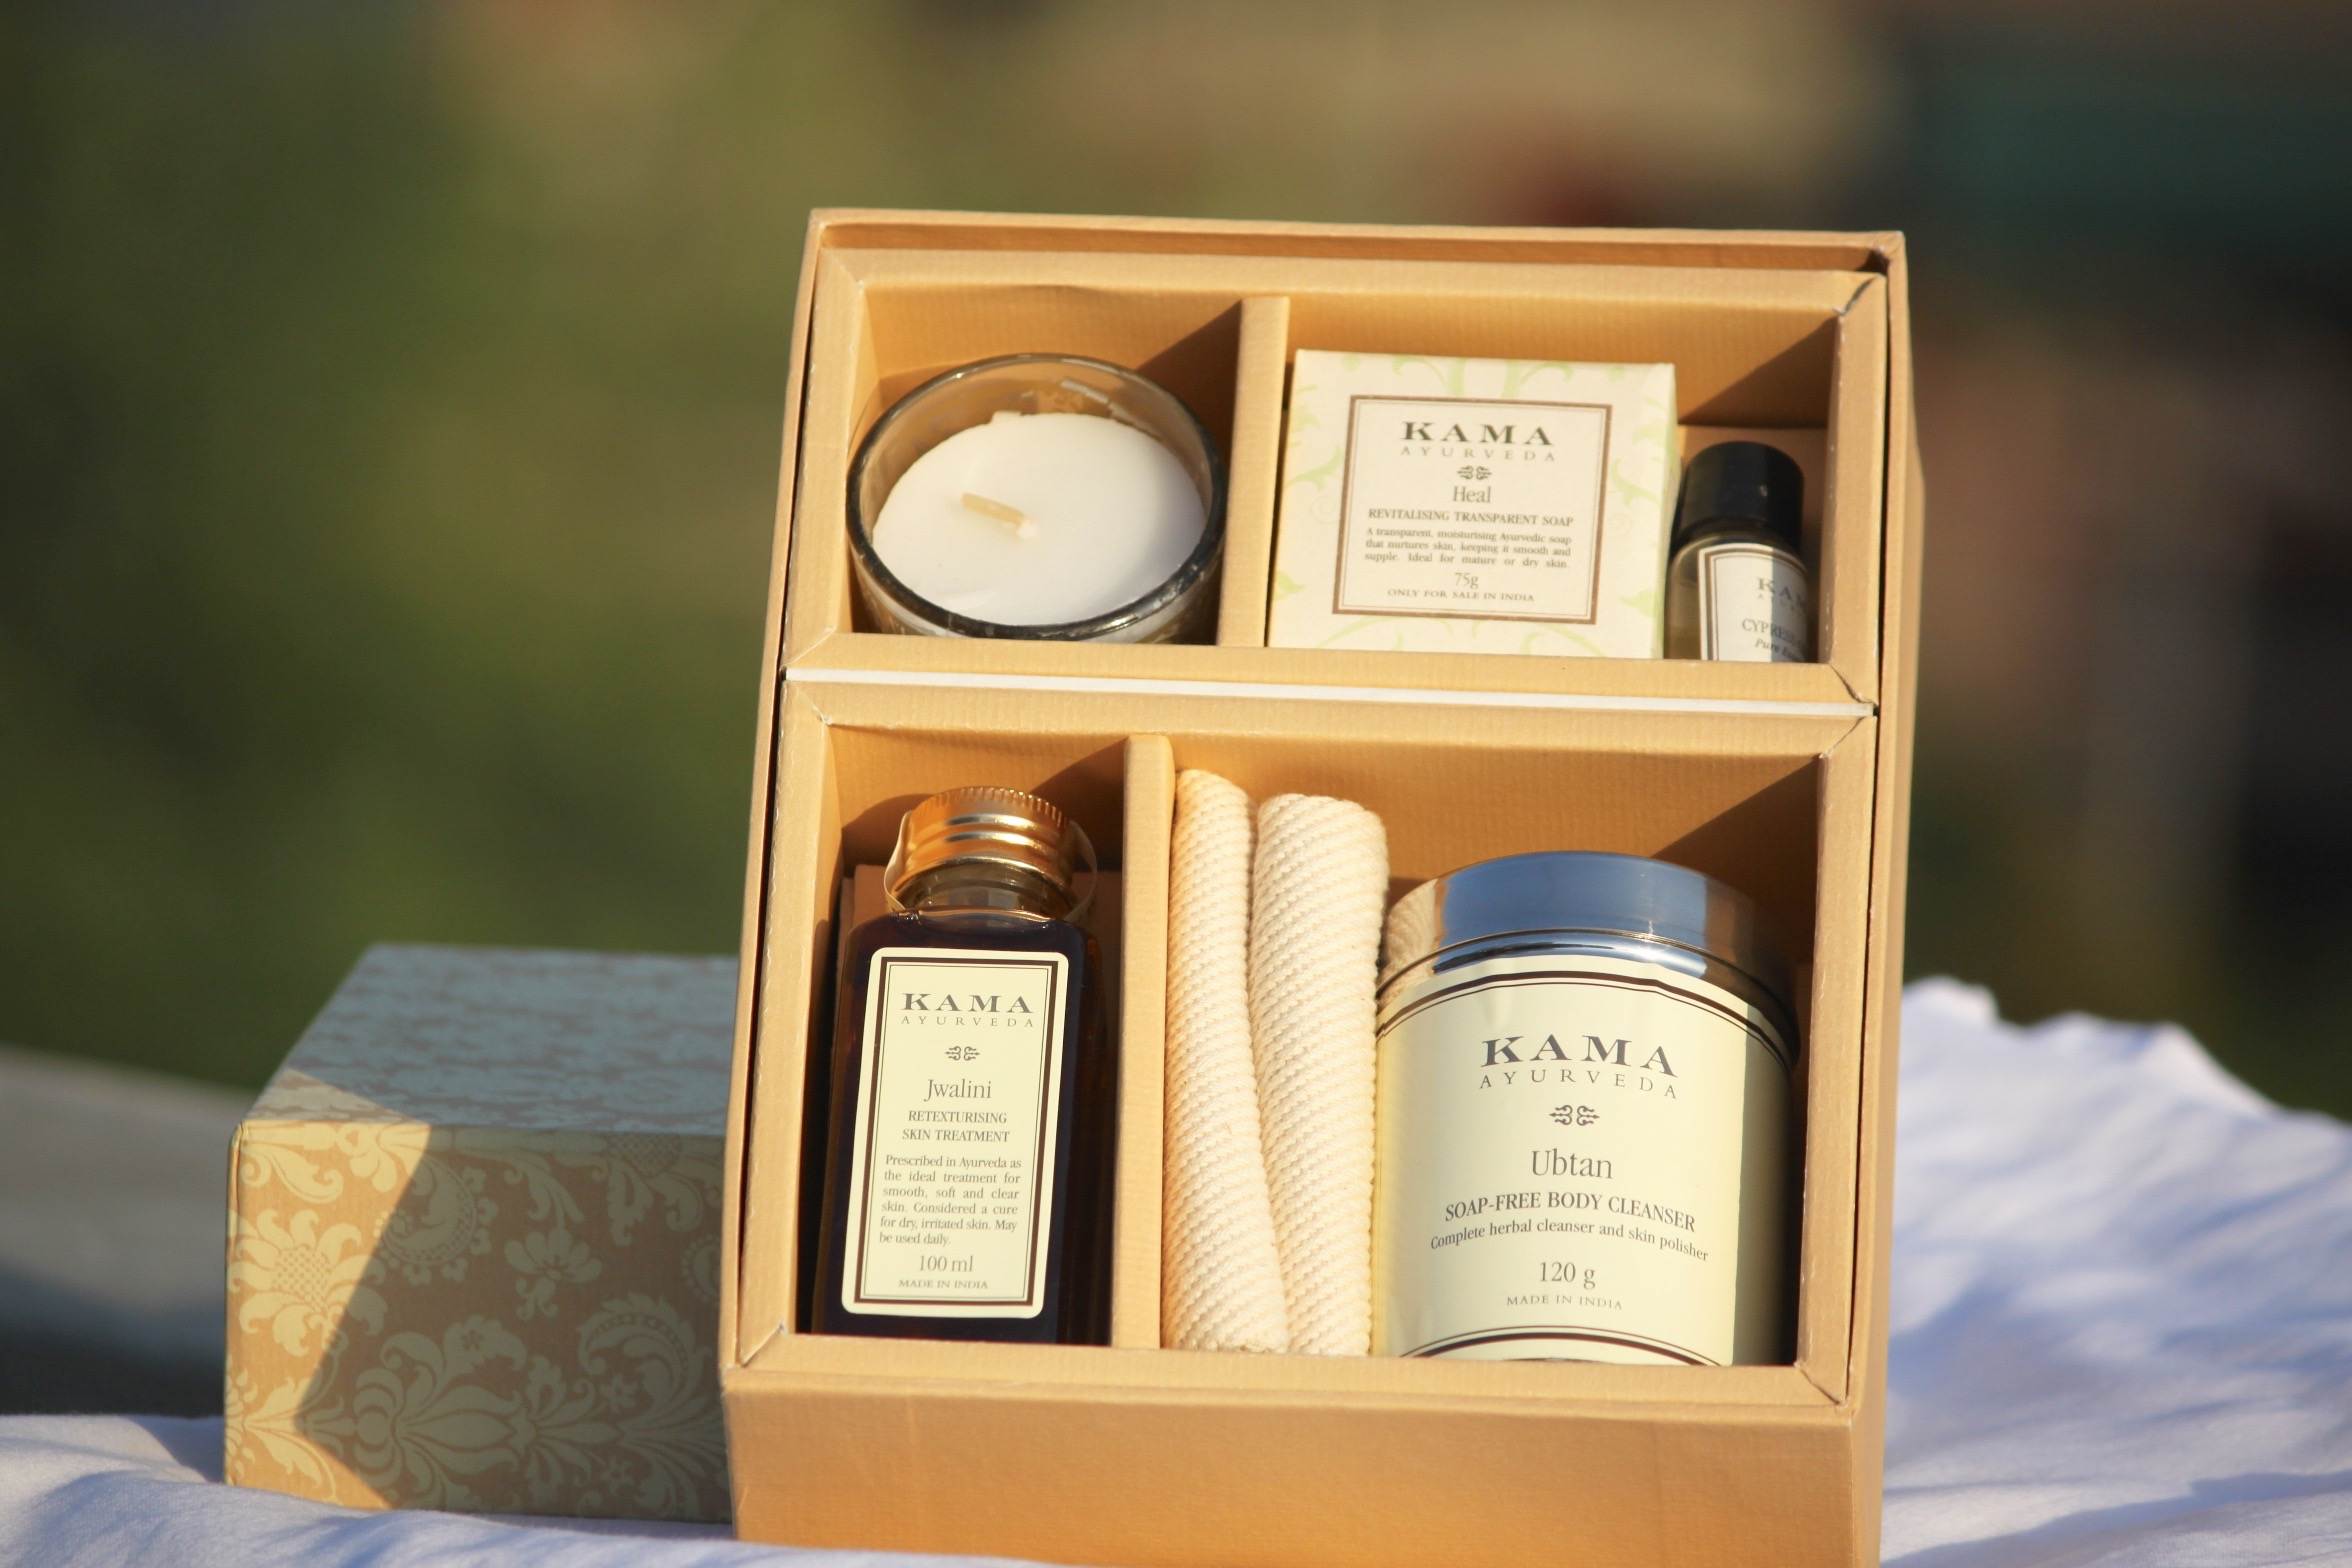 Kama Ayurveda, Luxury Home Spa Kit, Pamper night, Kama Ayurveda home spa